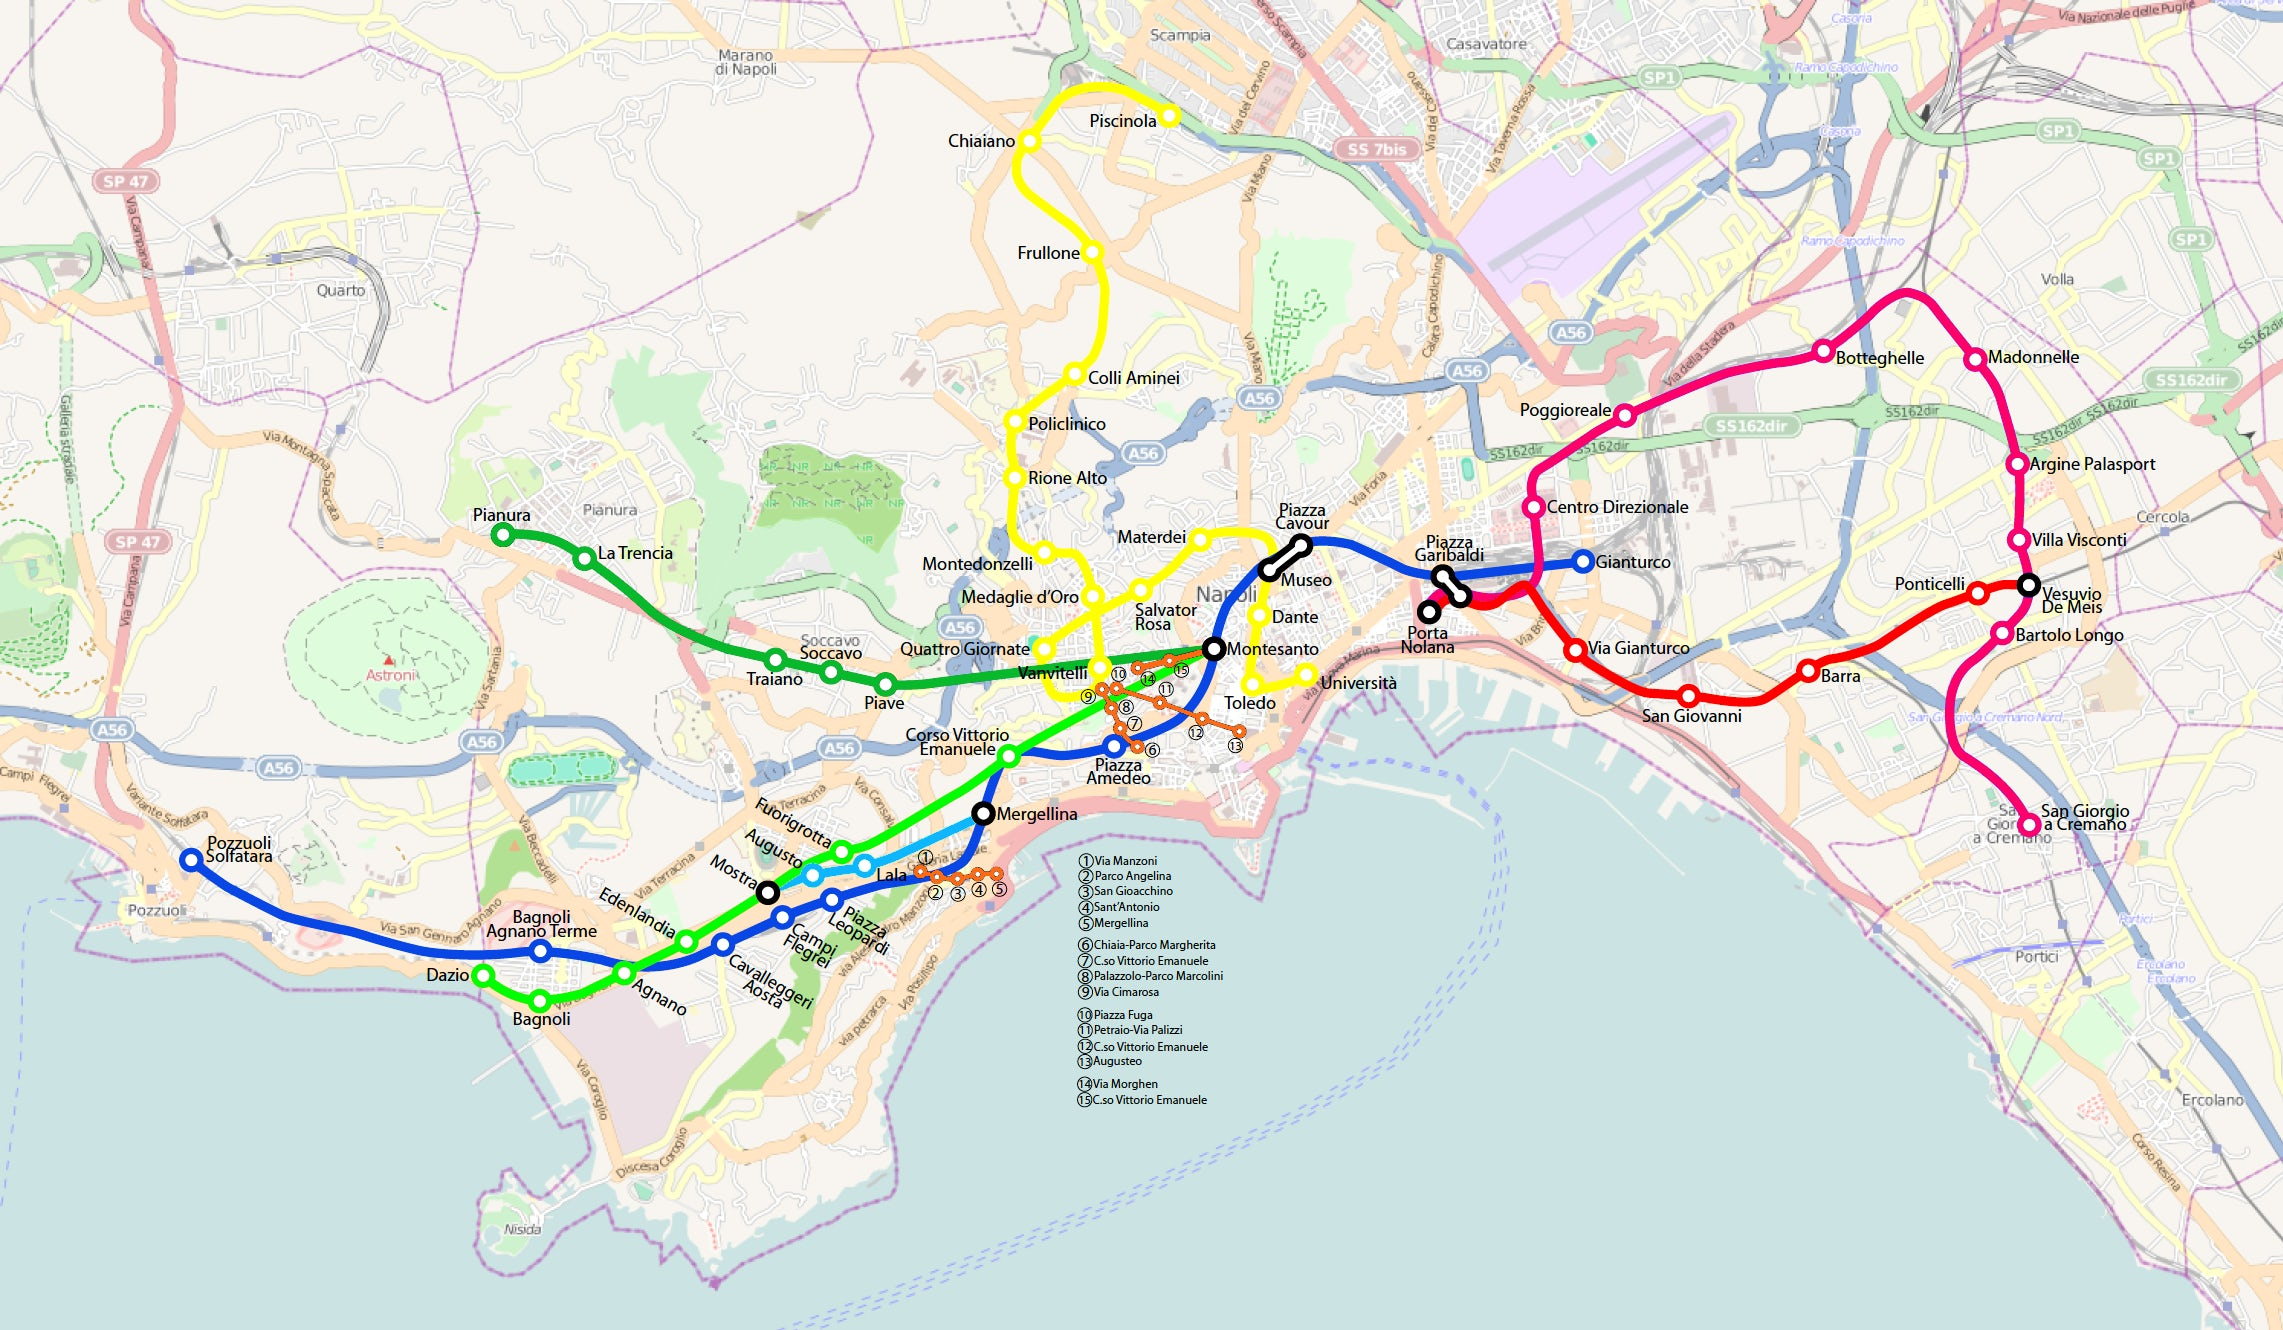 A handy guide to Naples metro system itinari